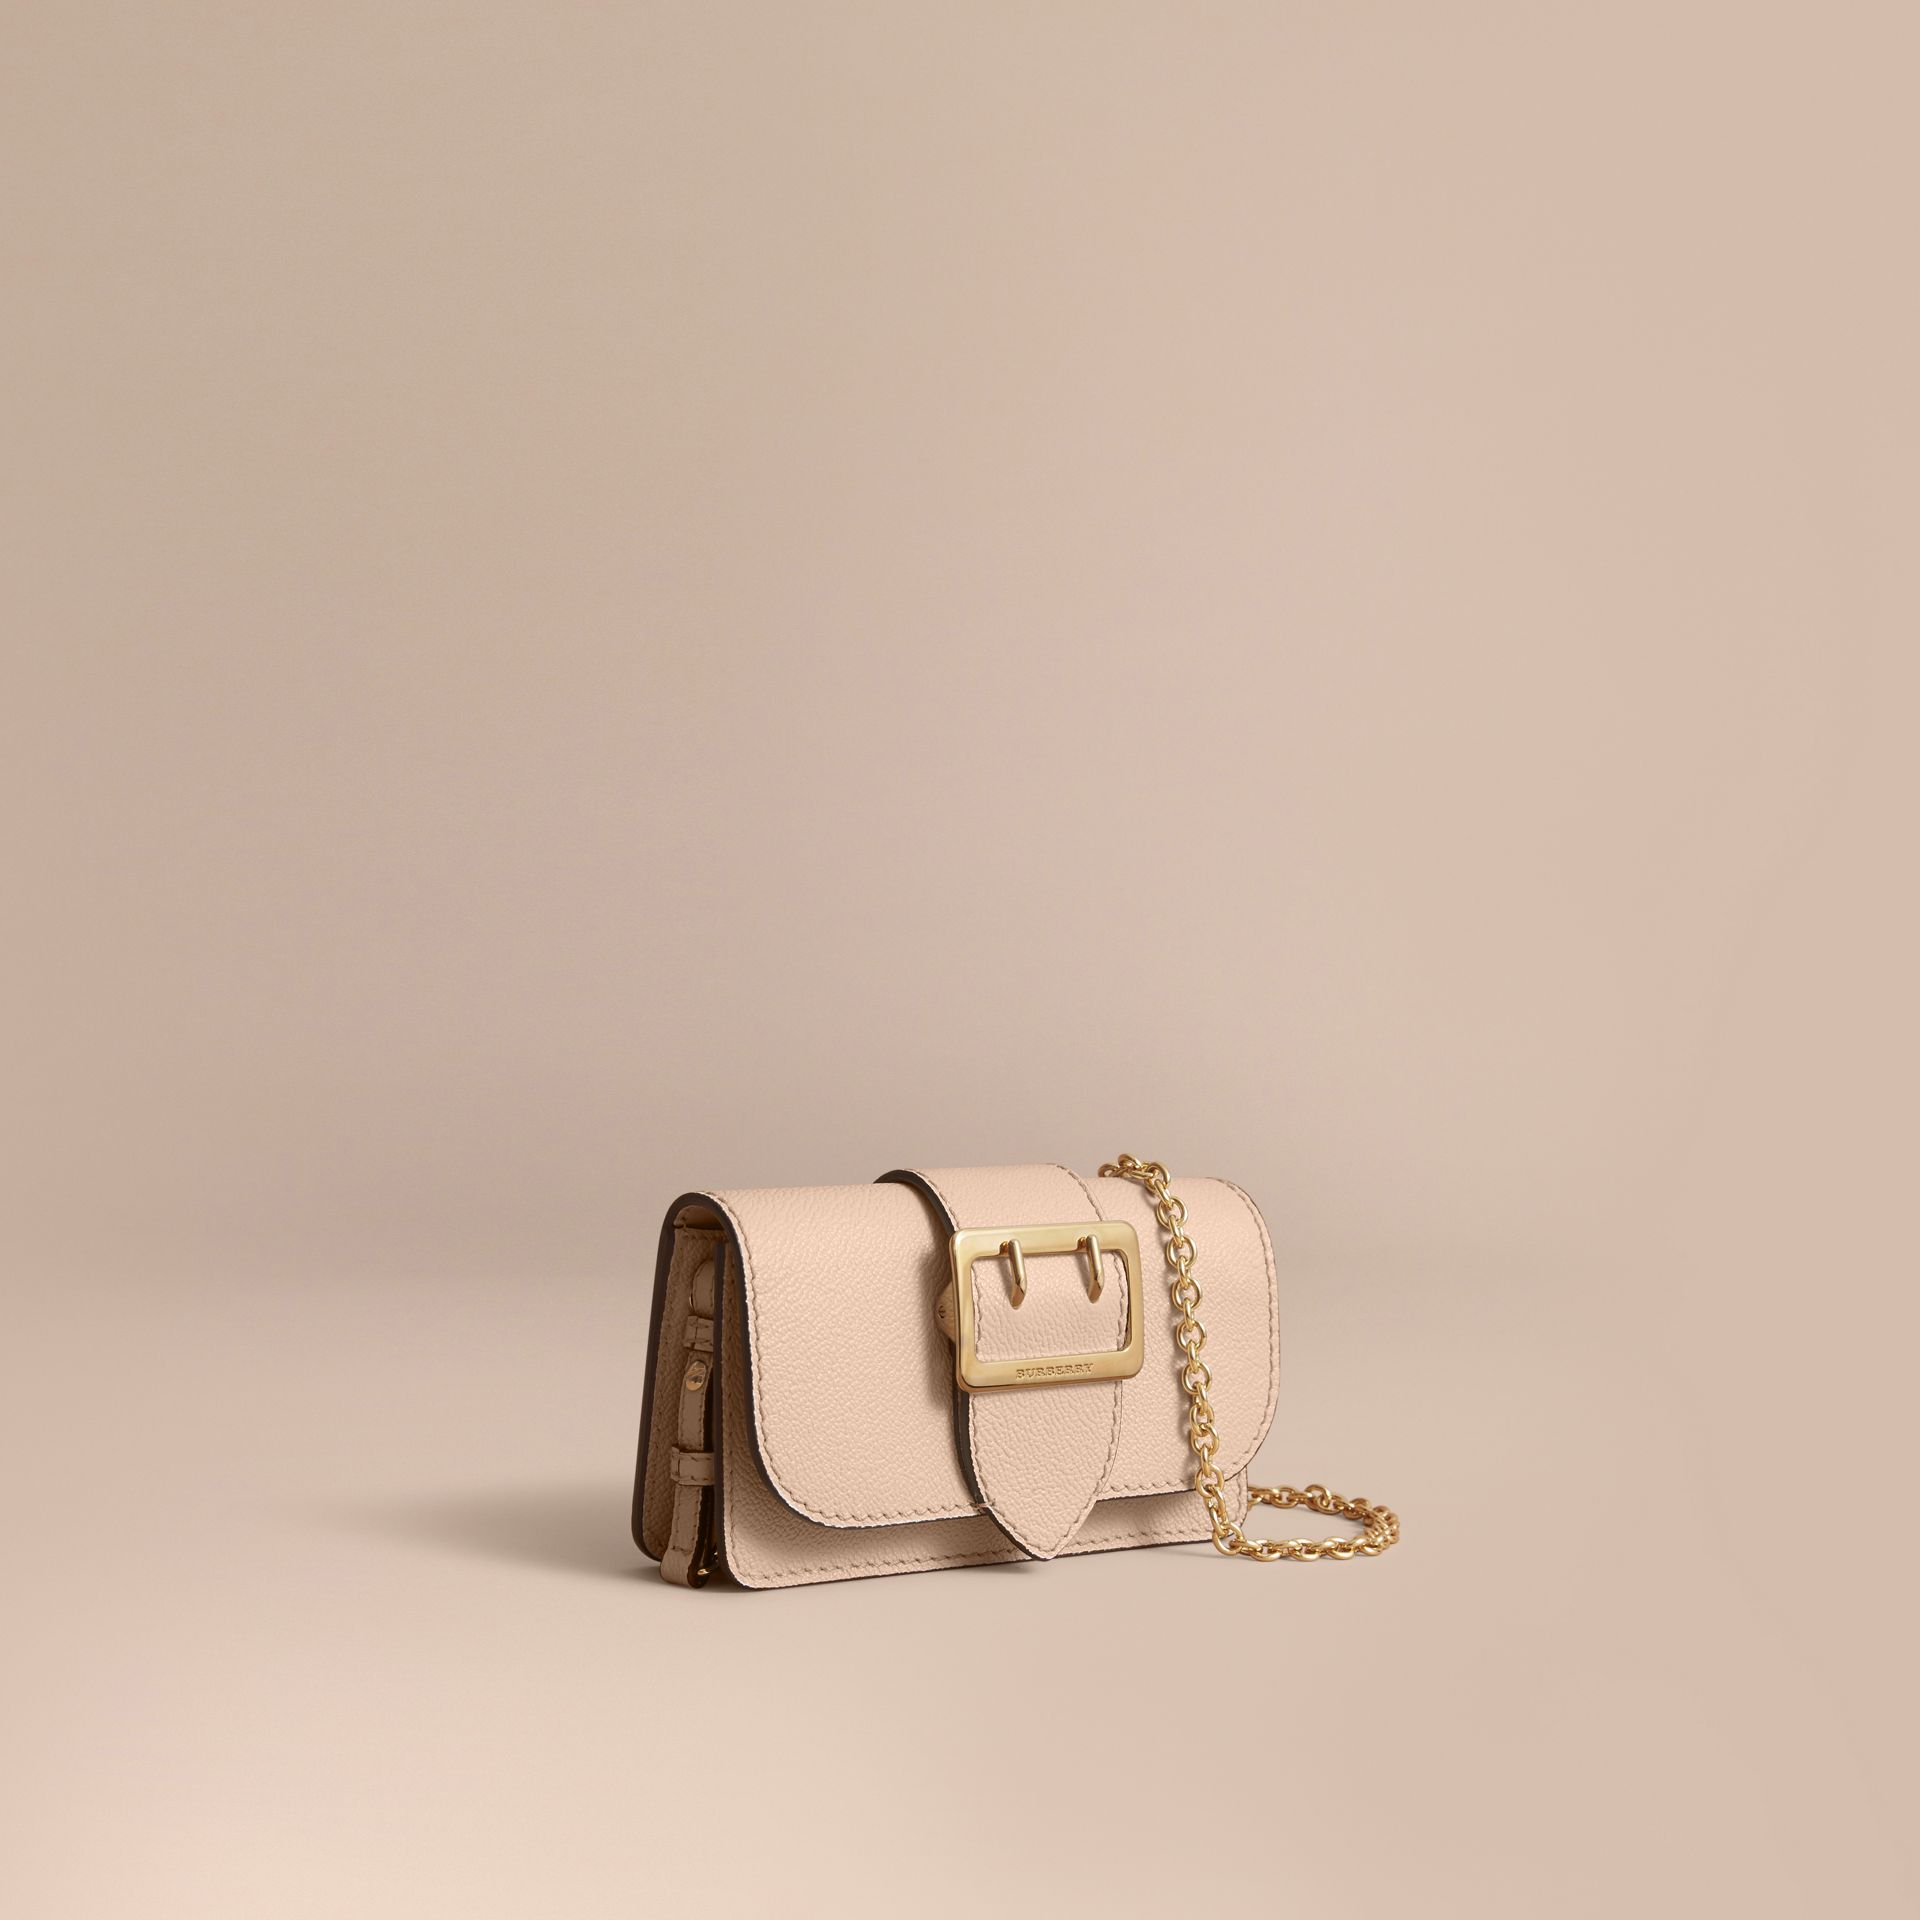 The Mini Buckle Bag in Grainy Leather in Limestone - Women | Burberry Australia - gallery image 1